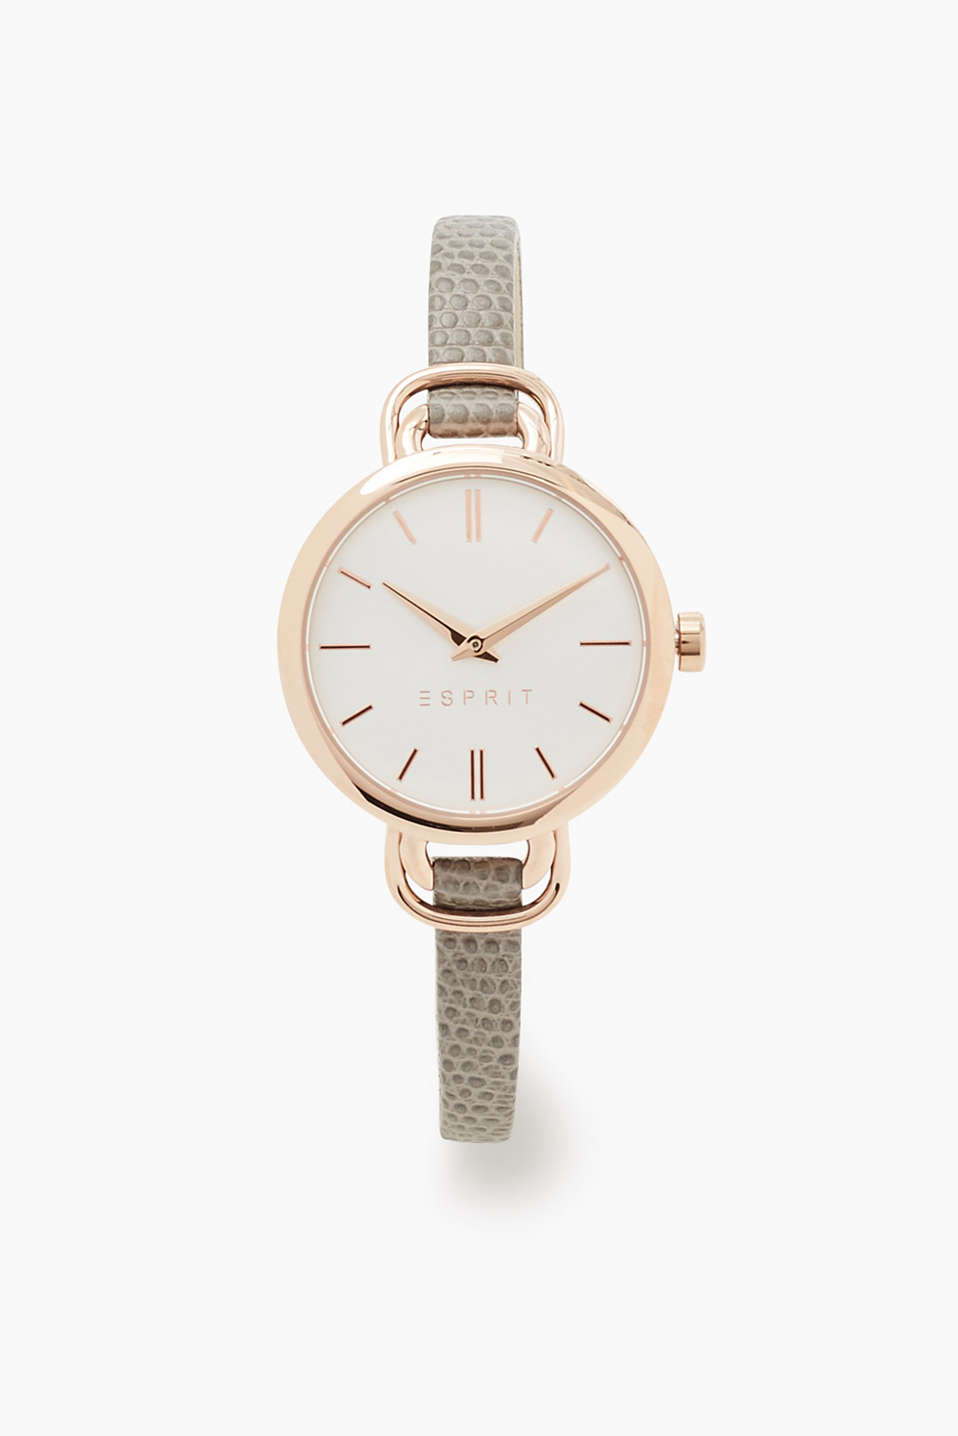 In a timeless look: watch with an embossed leather strap